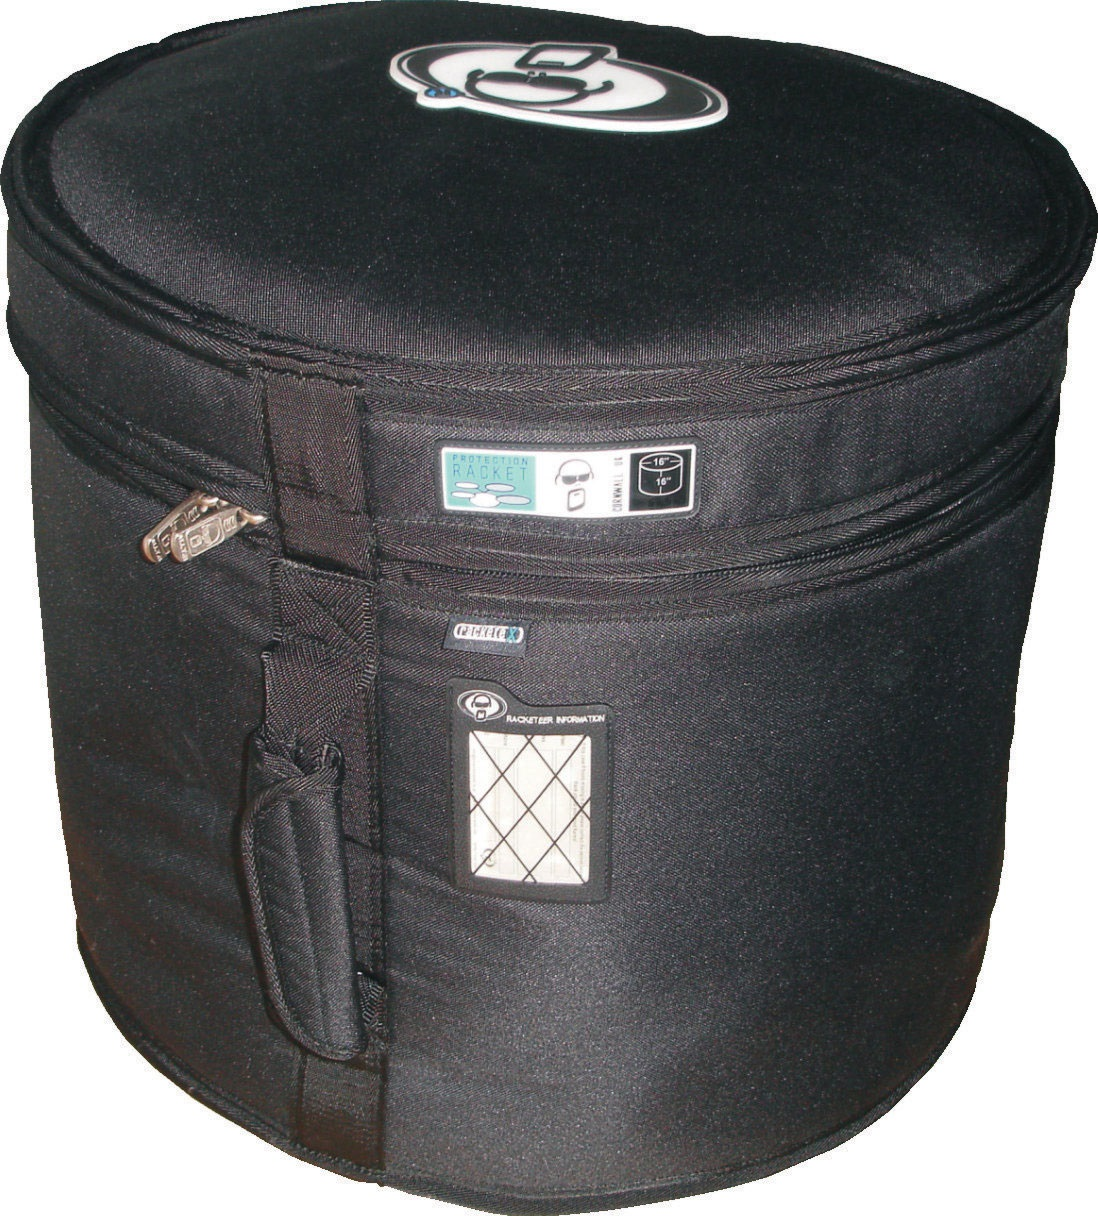 "Protection Racket 15"" x 15"" Floor Tom Case RIMS"